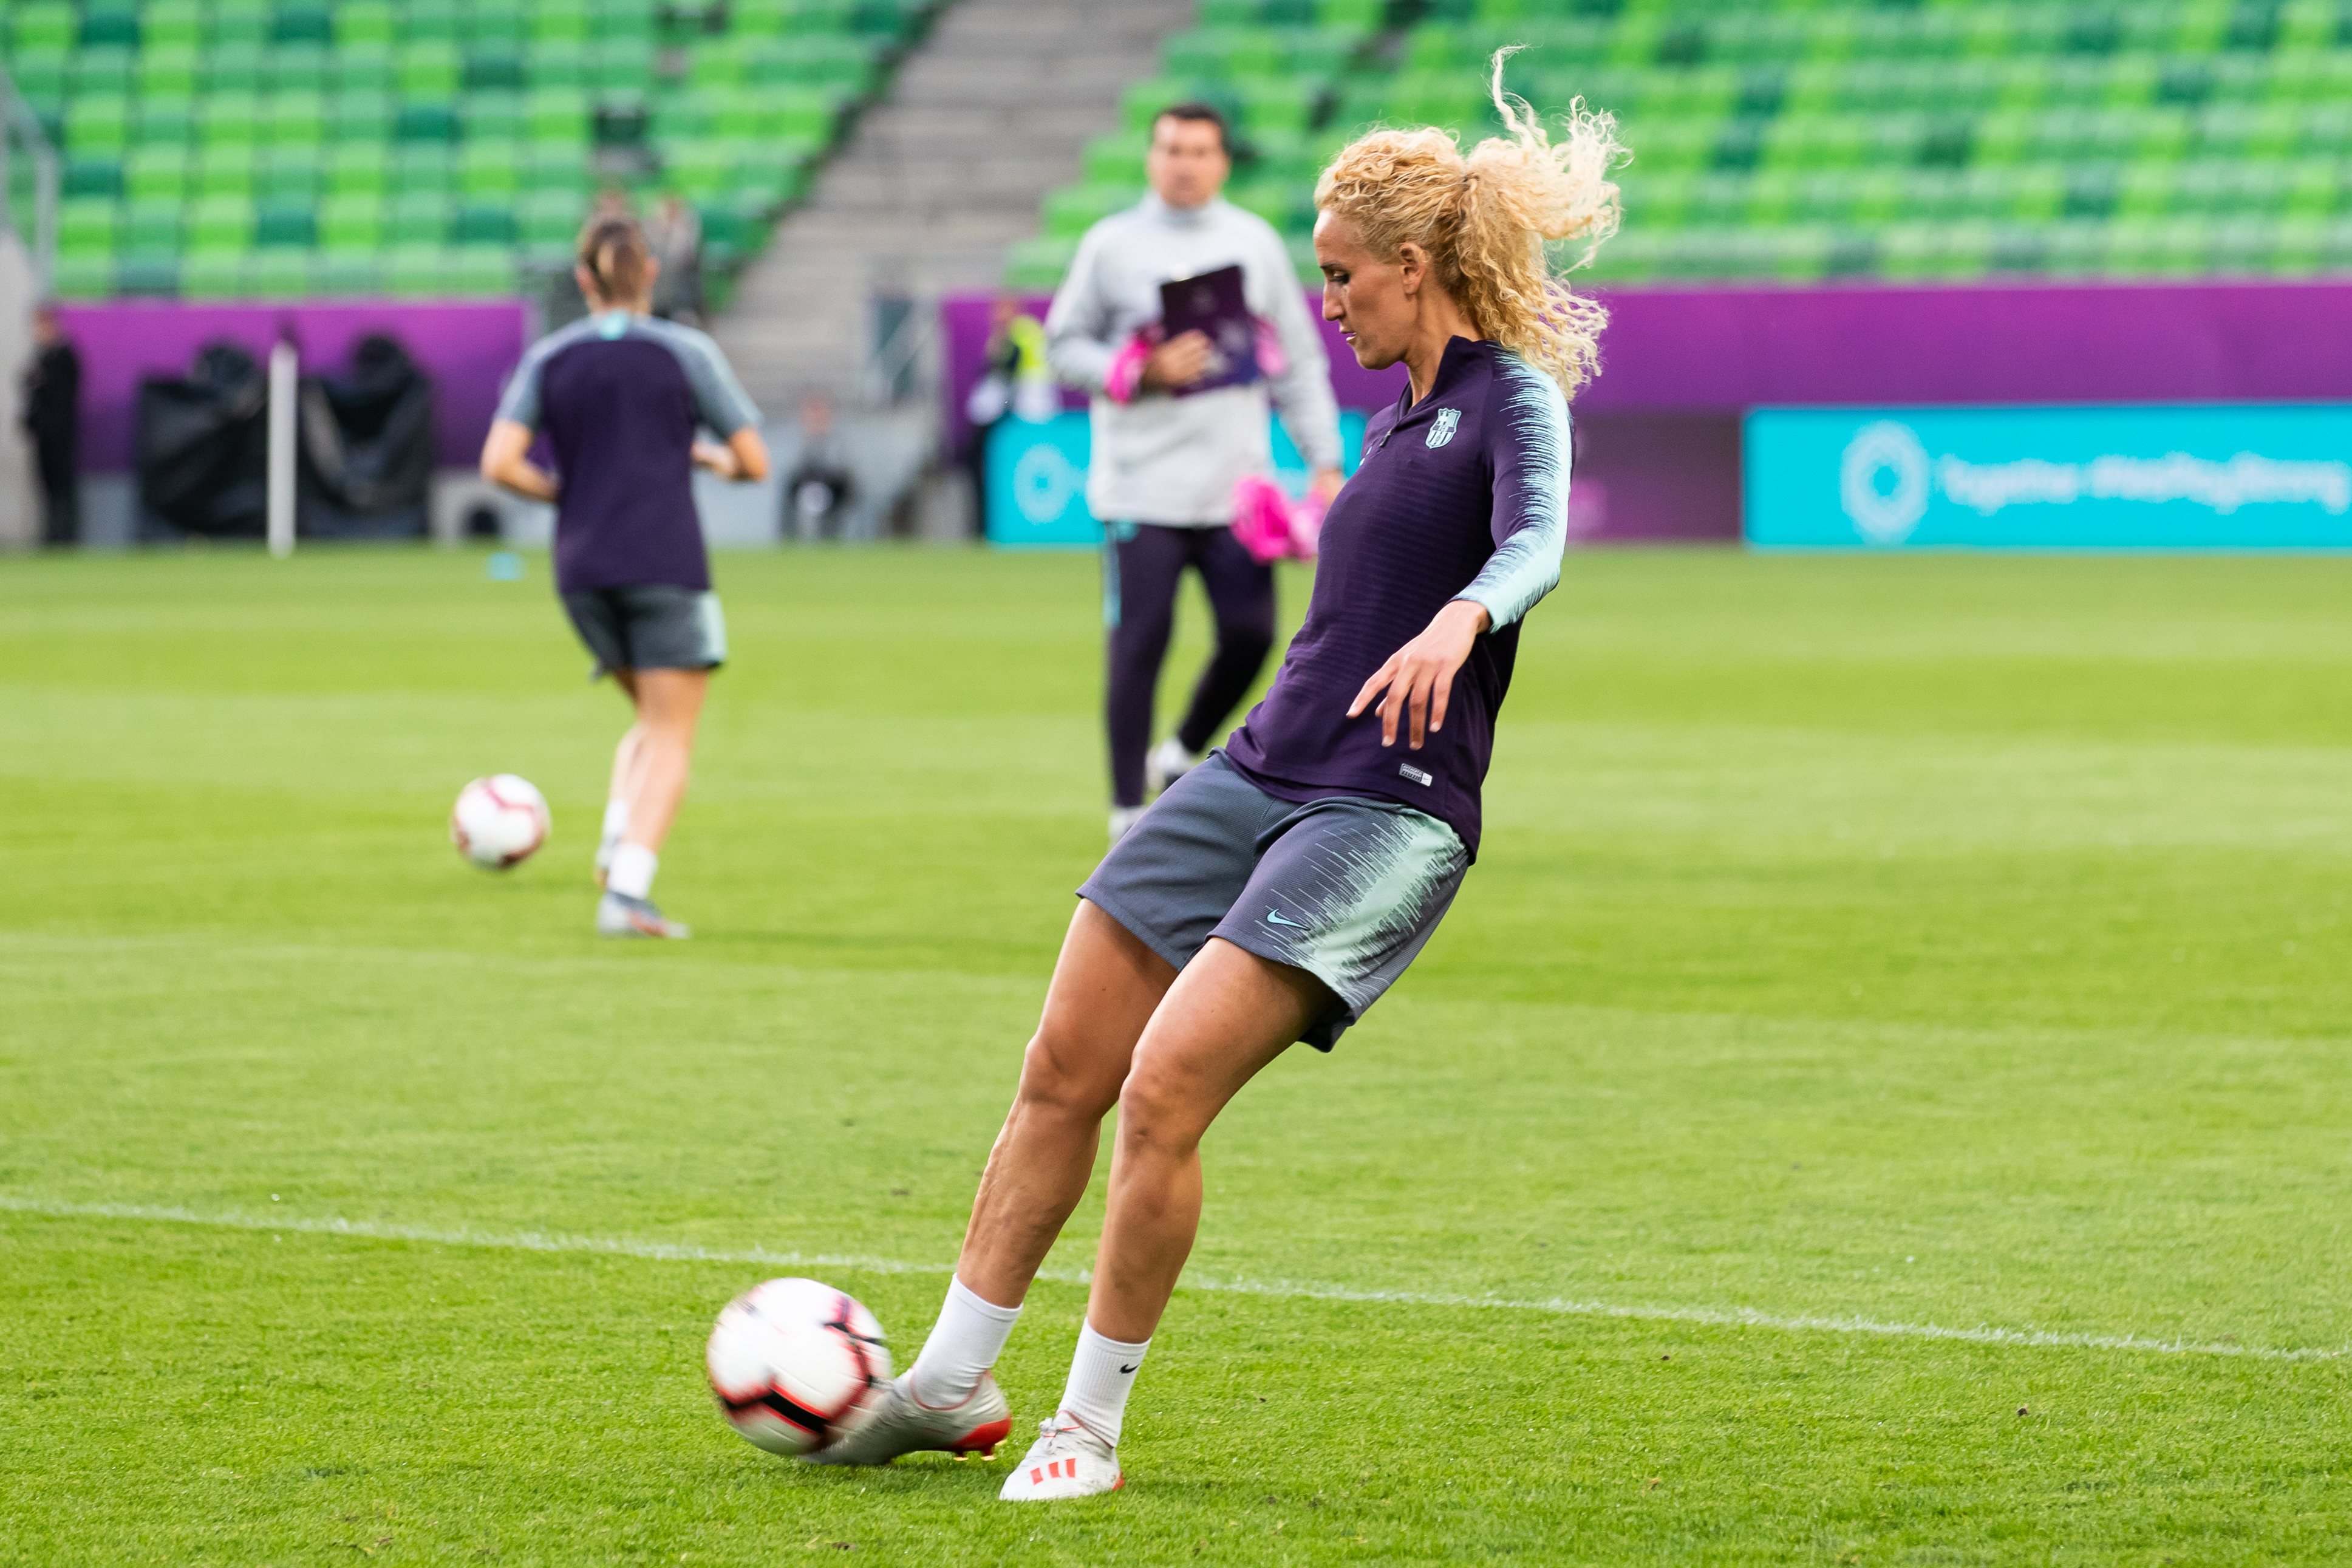 File 2019 05 17 Fussball Frauen Uefa Women S Champions